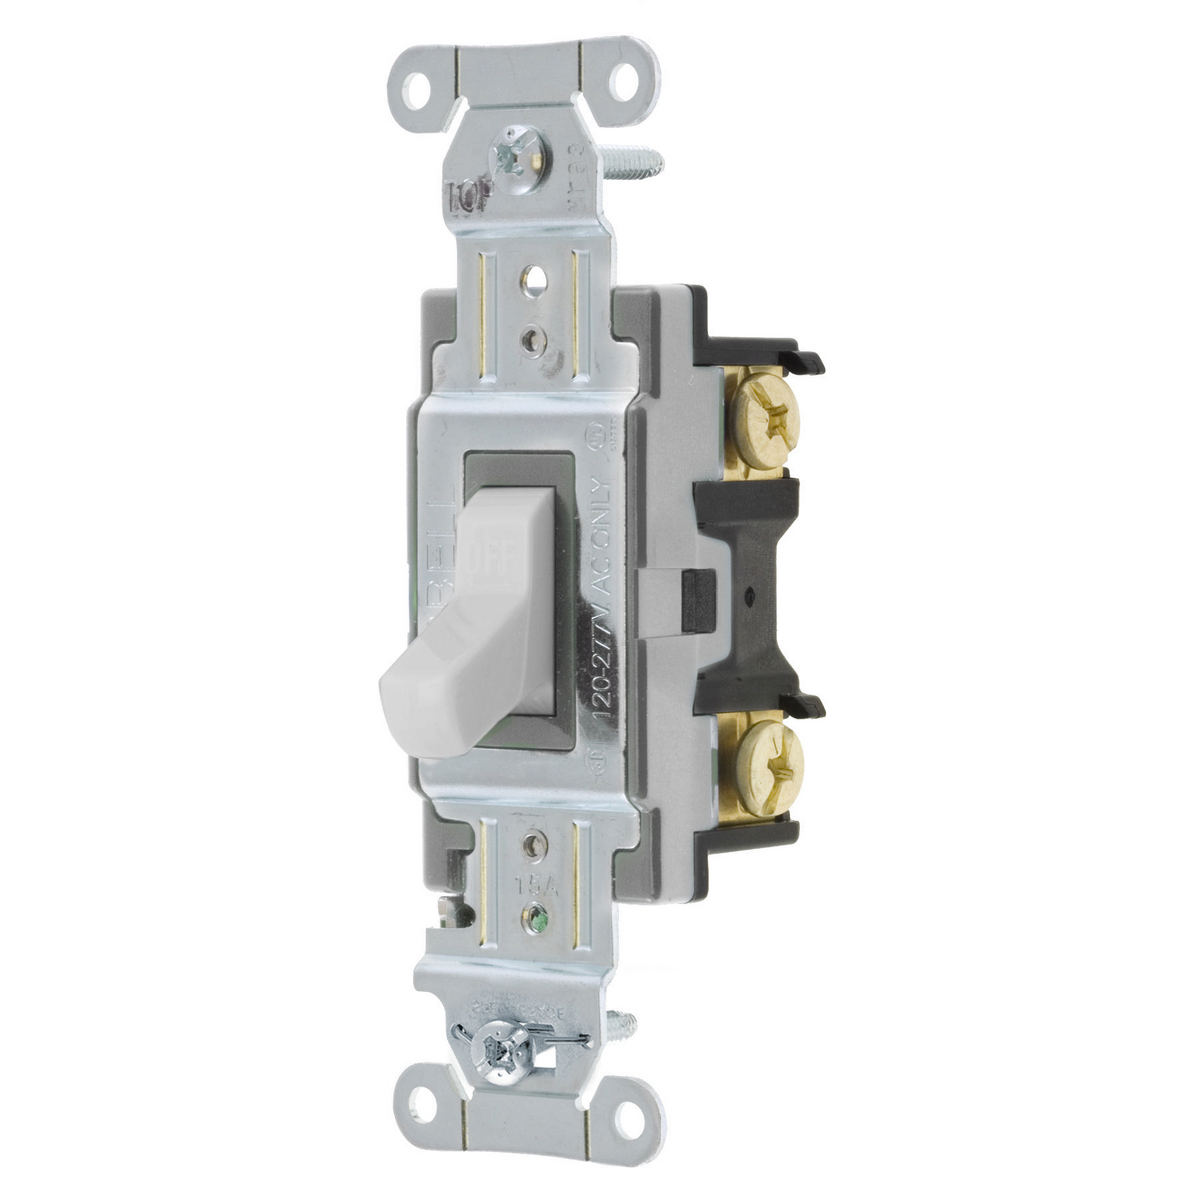 hight resolution of hubcs115ow switch spec sp 15a 120 277v ow cs115ow